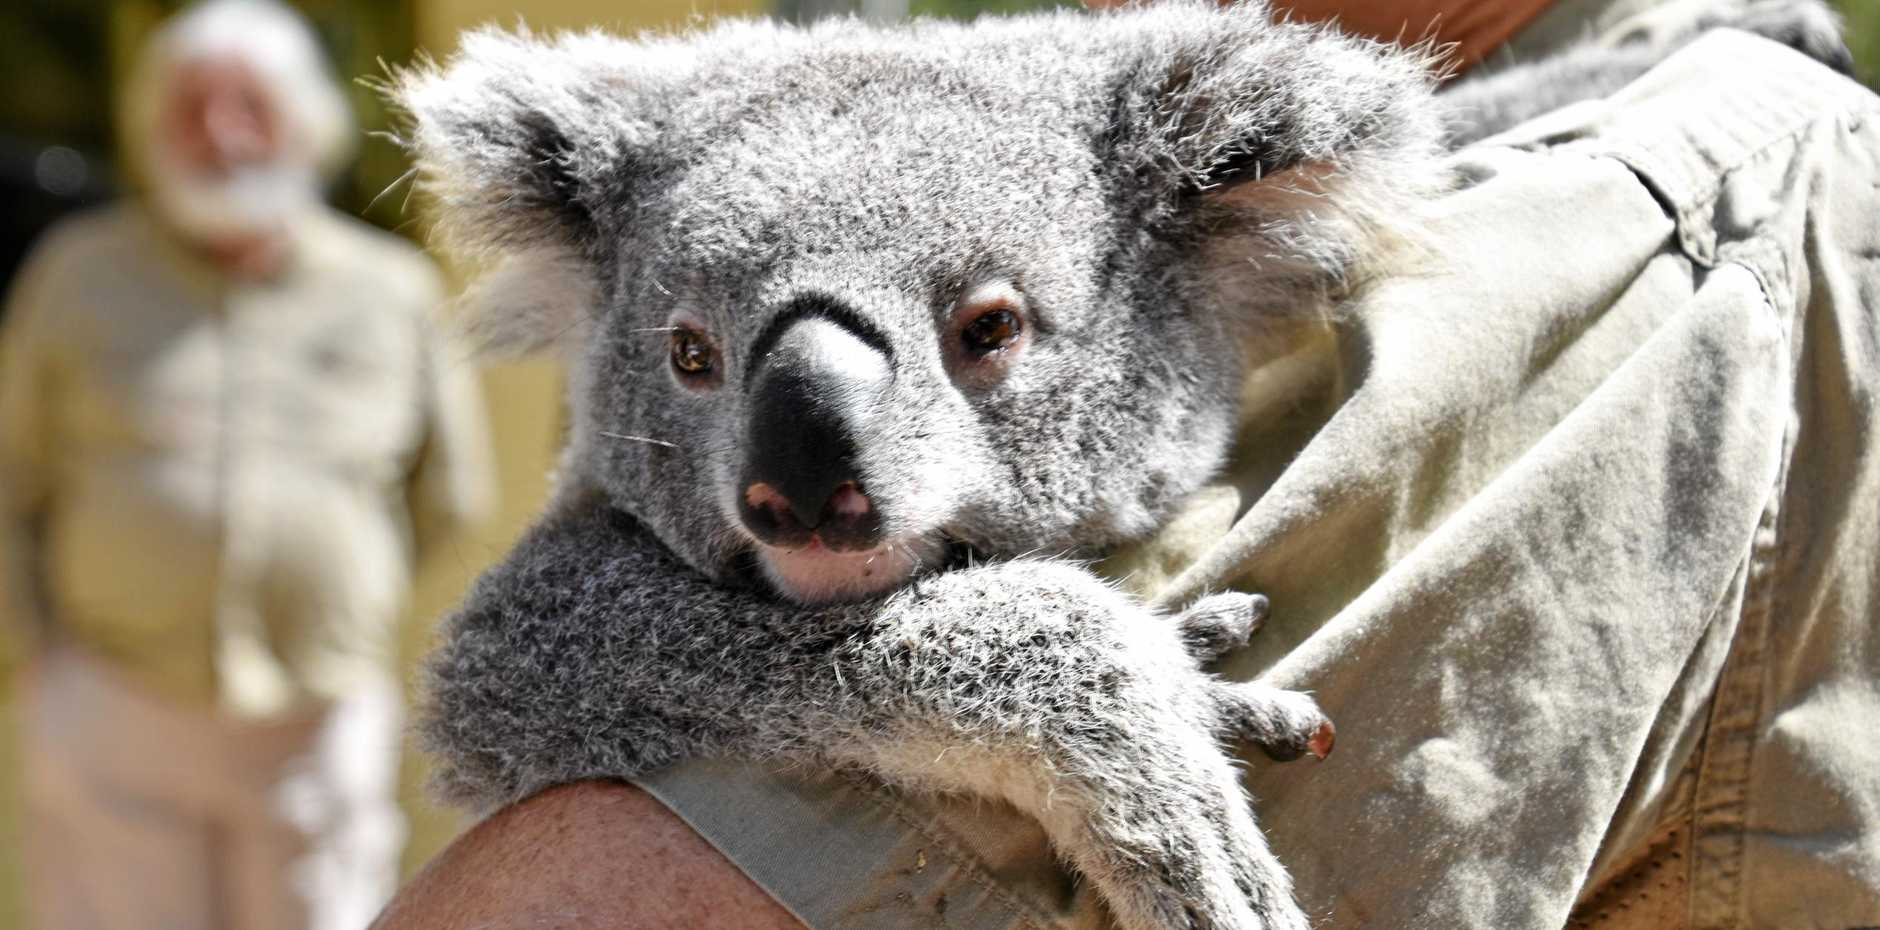 Northern Rivers volunteer group, Friends of the Koala, has become a major contributor to Australian health research on threatened koala populations.